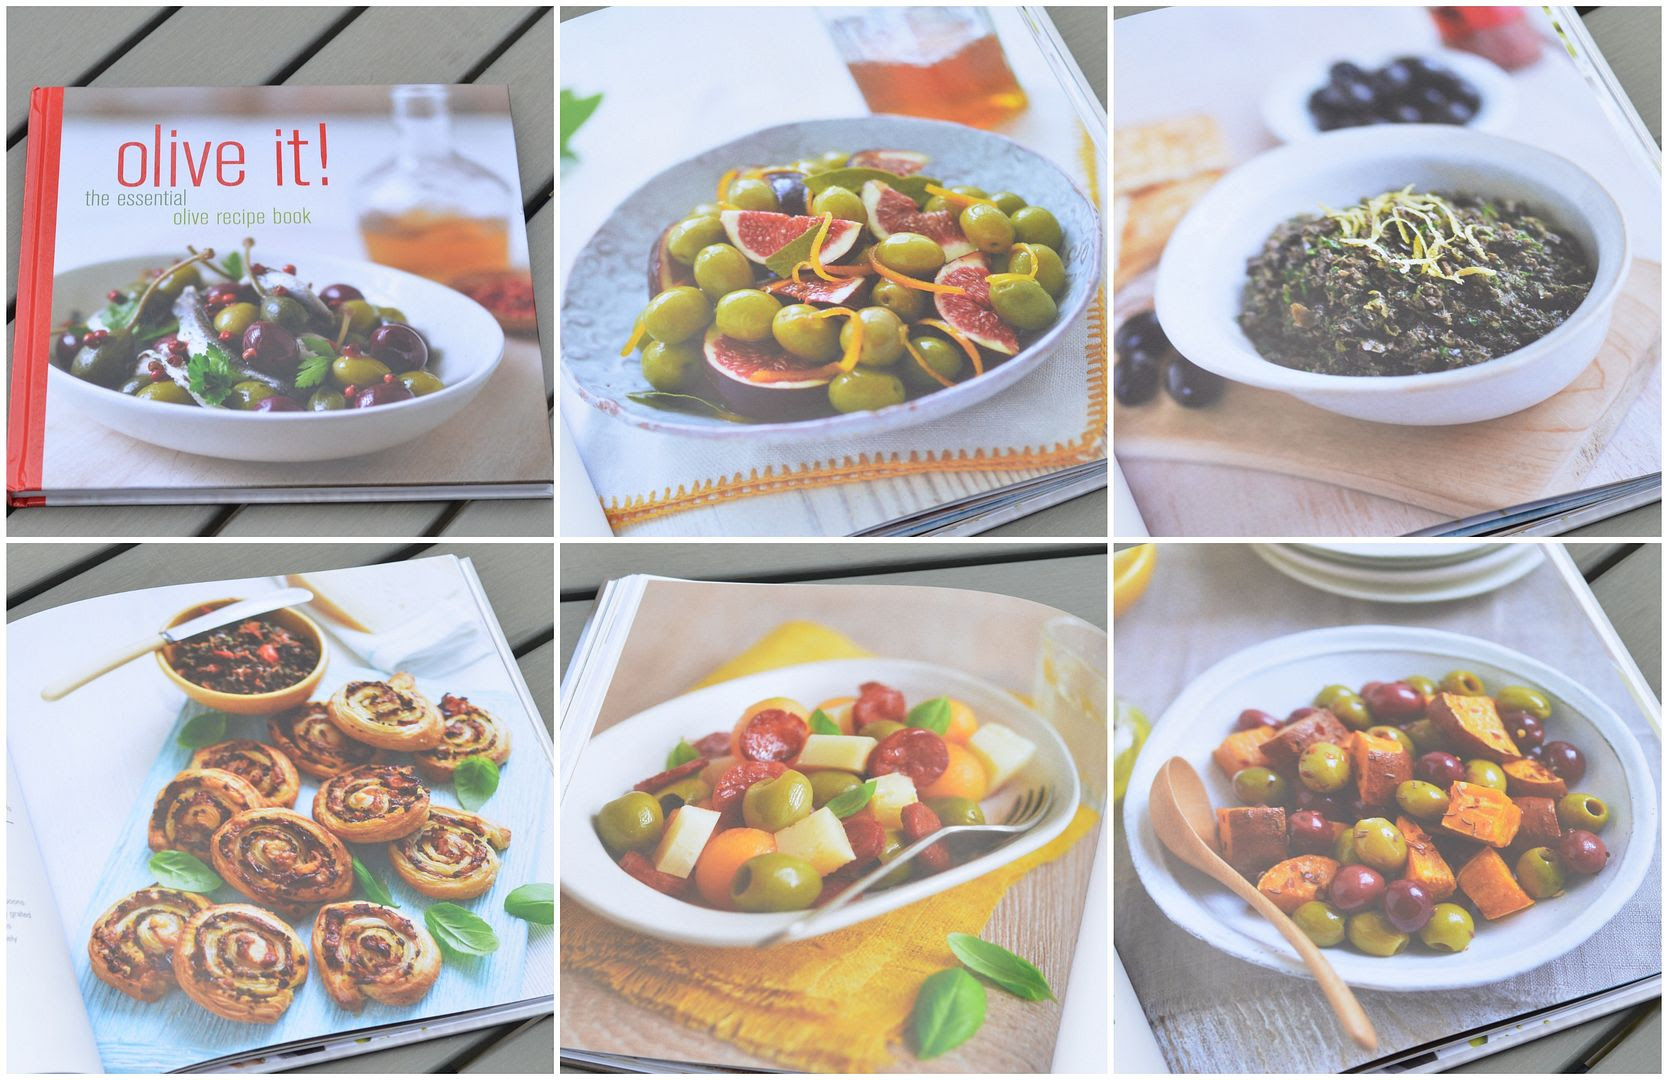 olive it! cookbook